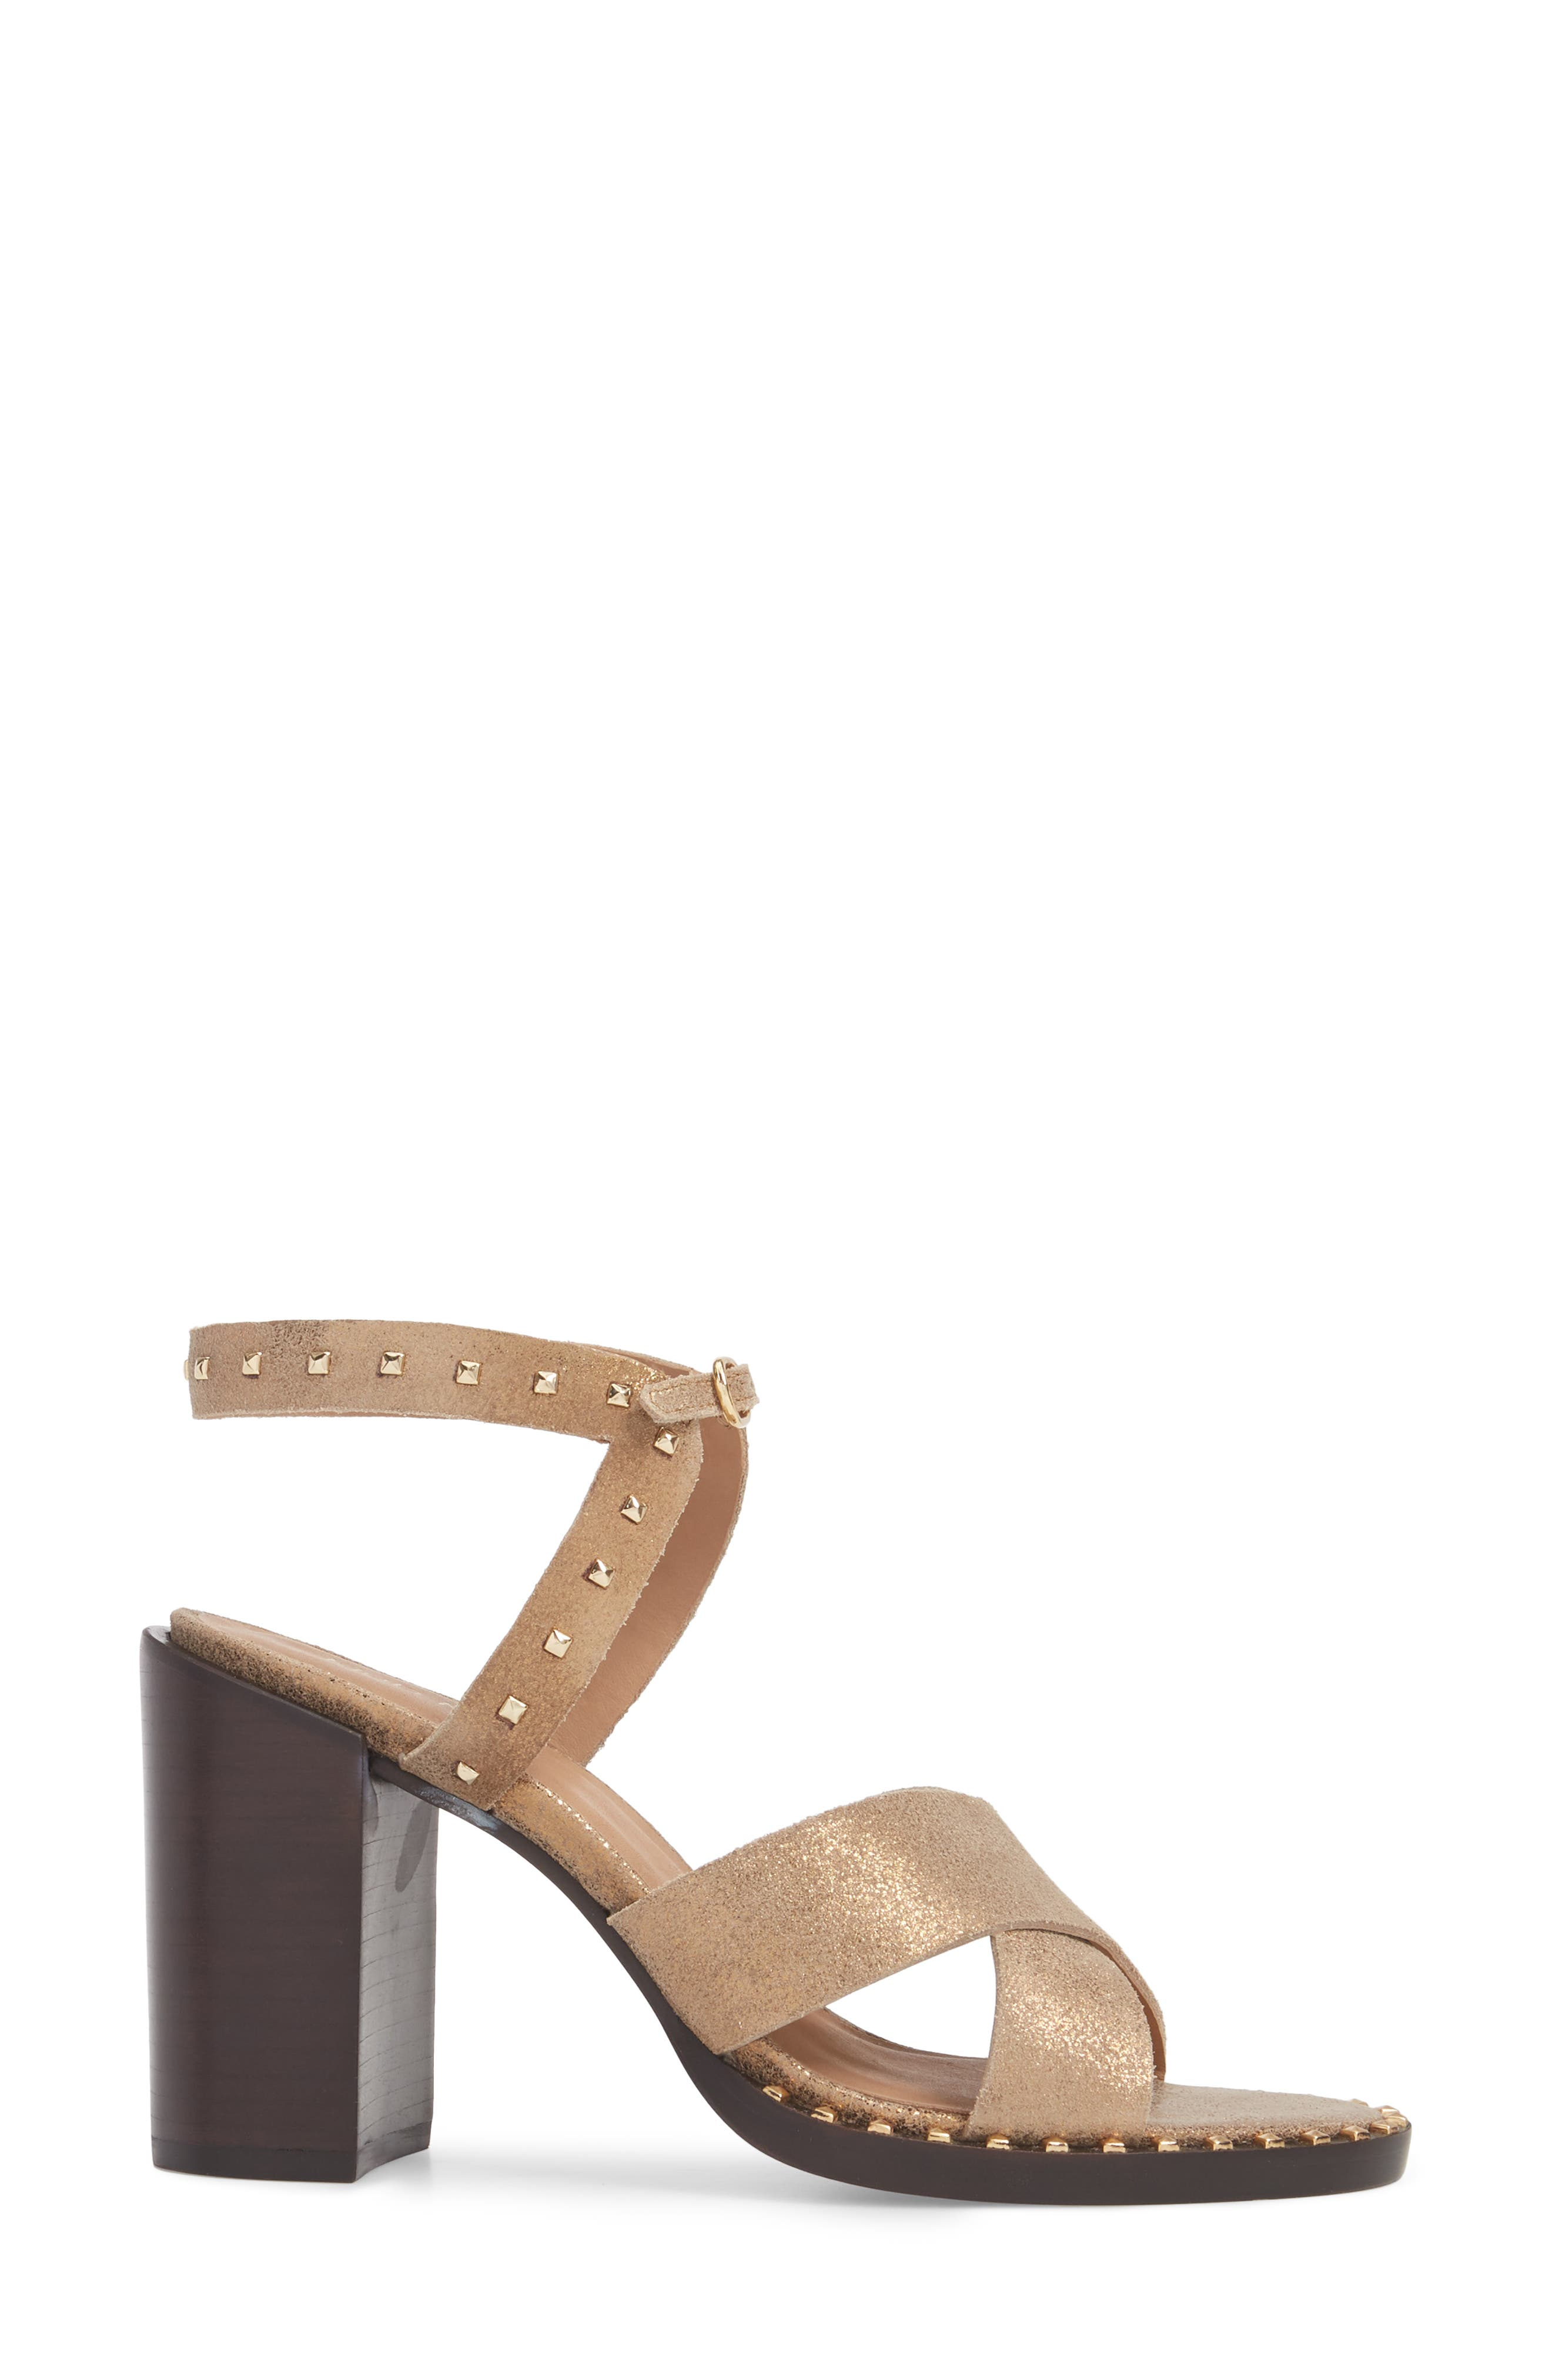 Tabia Sandal,                             Alternate thumbnail 3, color,                             Bronze Suede